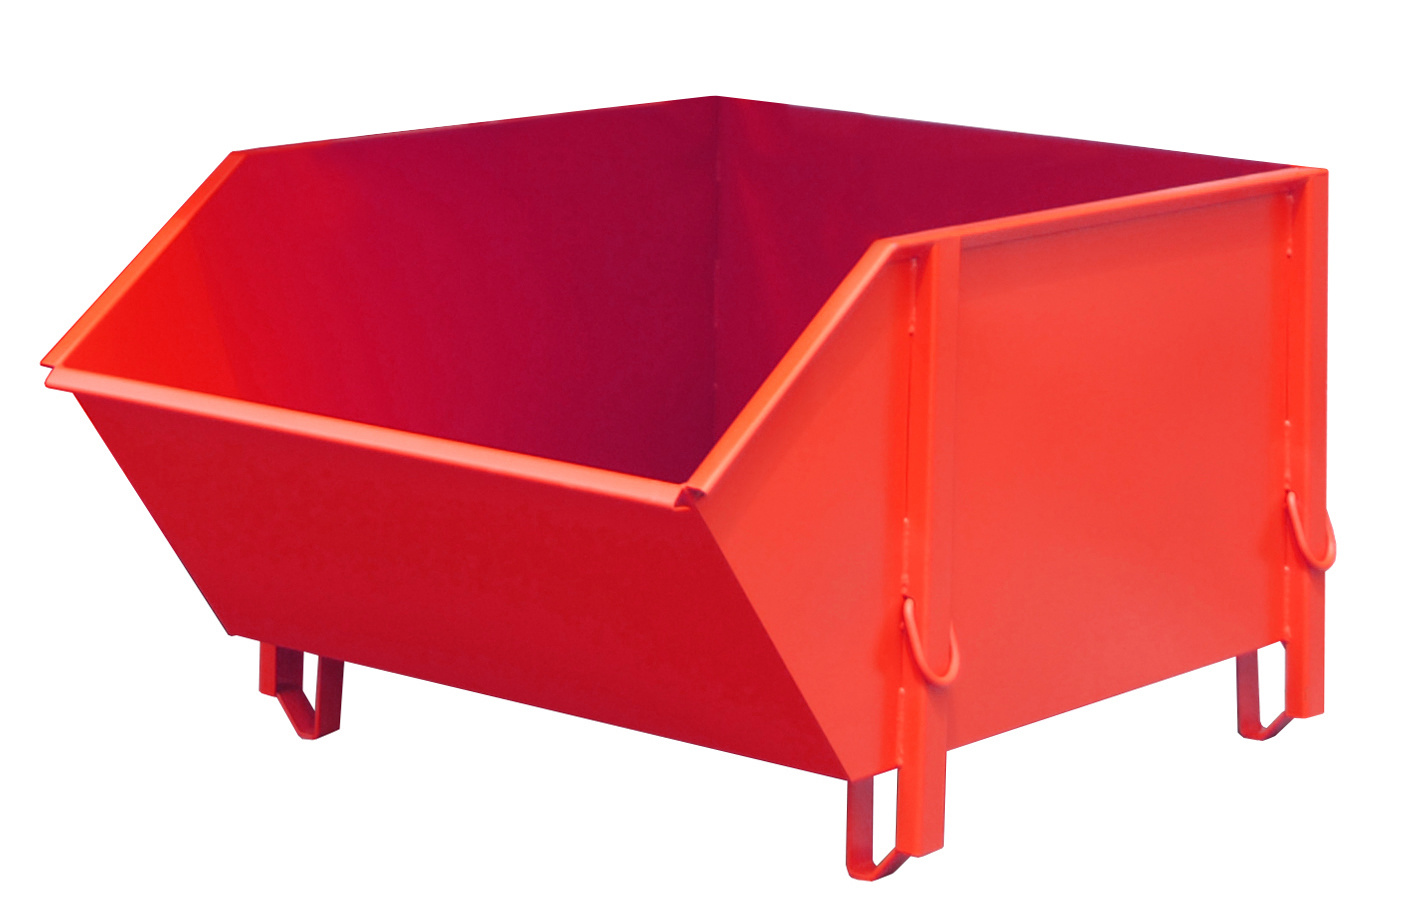 BAUER SÜDLAUT® BBG Building material container, made of smooth sheet steel